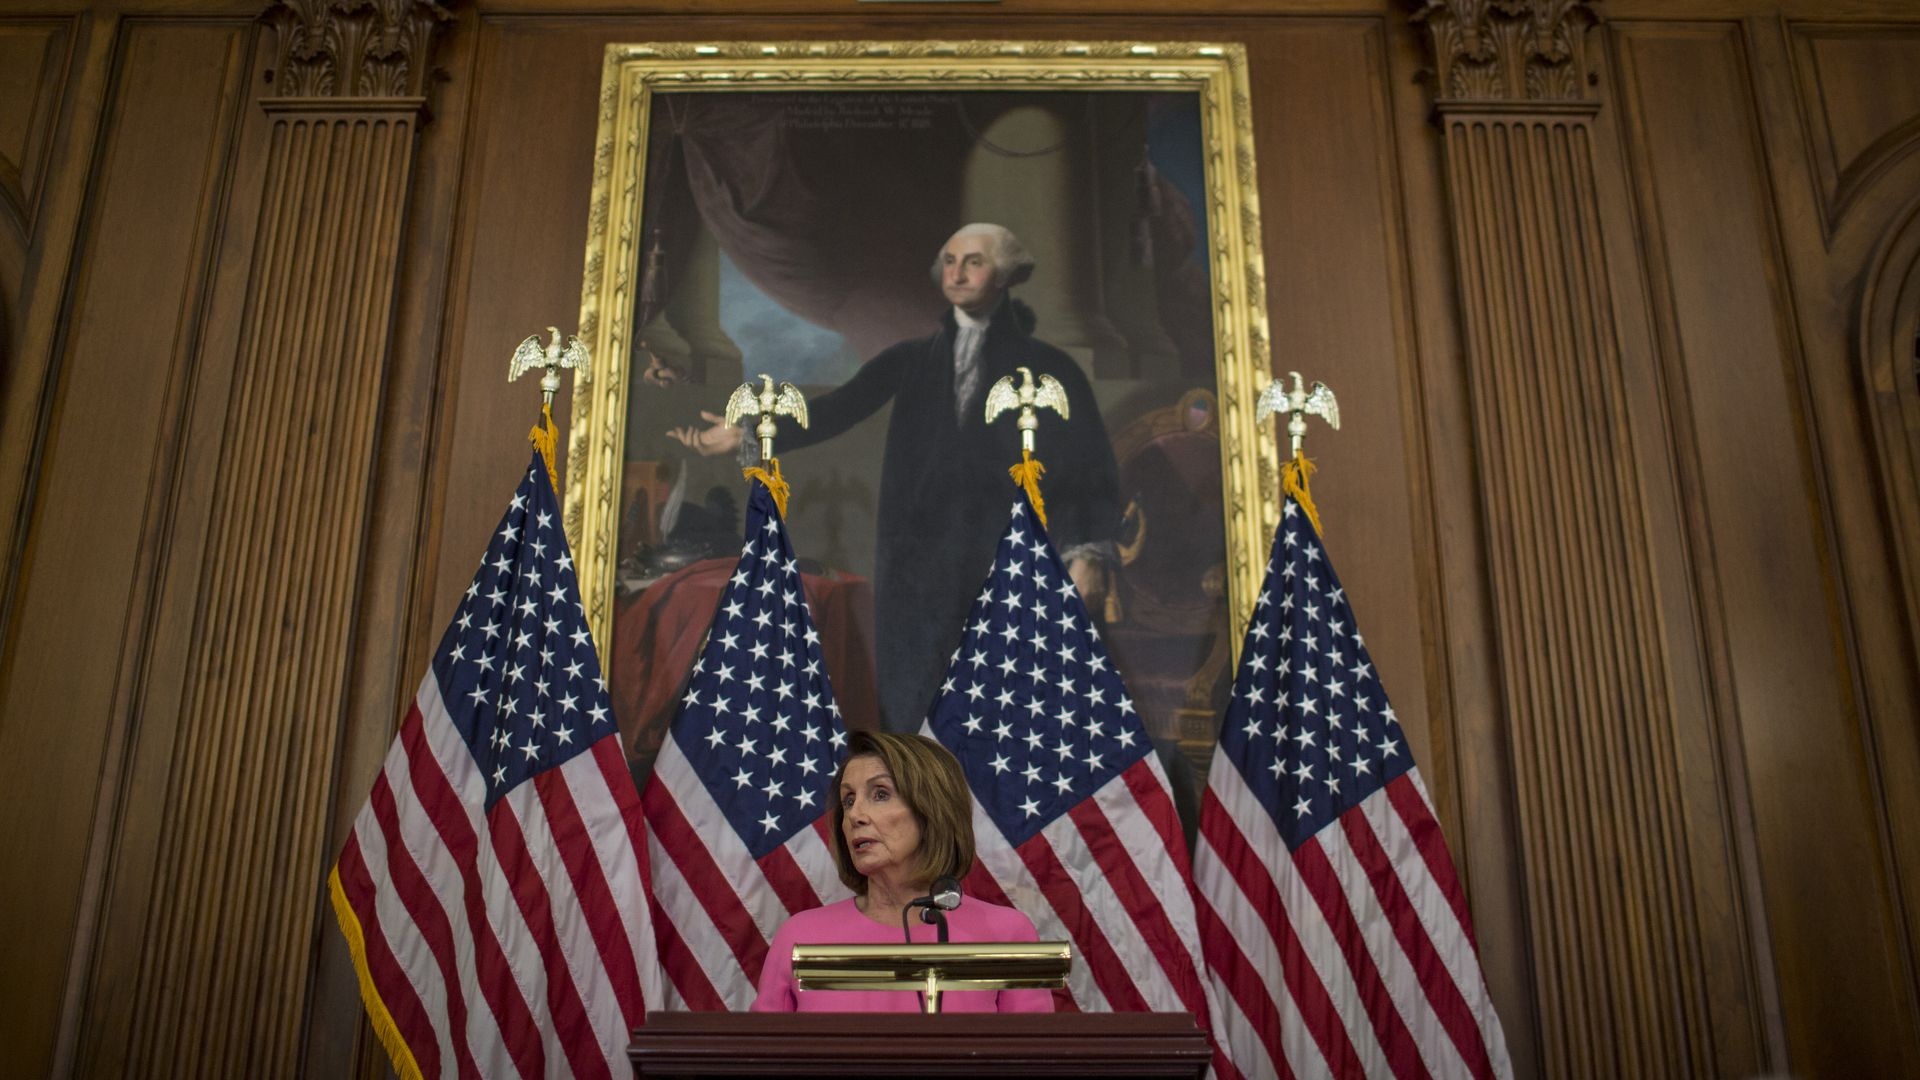 Nancy Pelosi standing in front of a portrait of George Washington